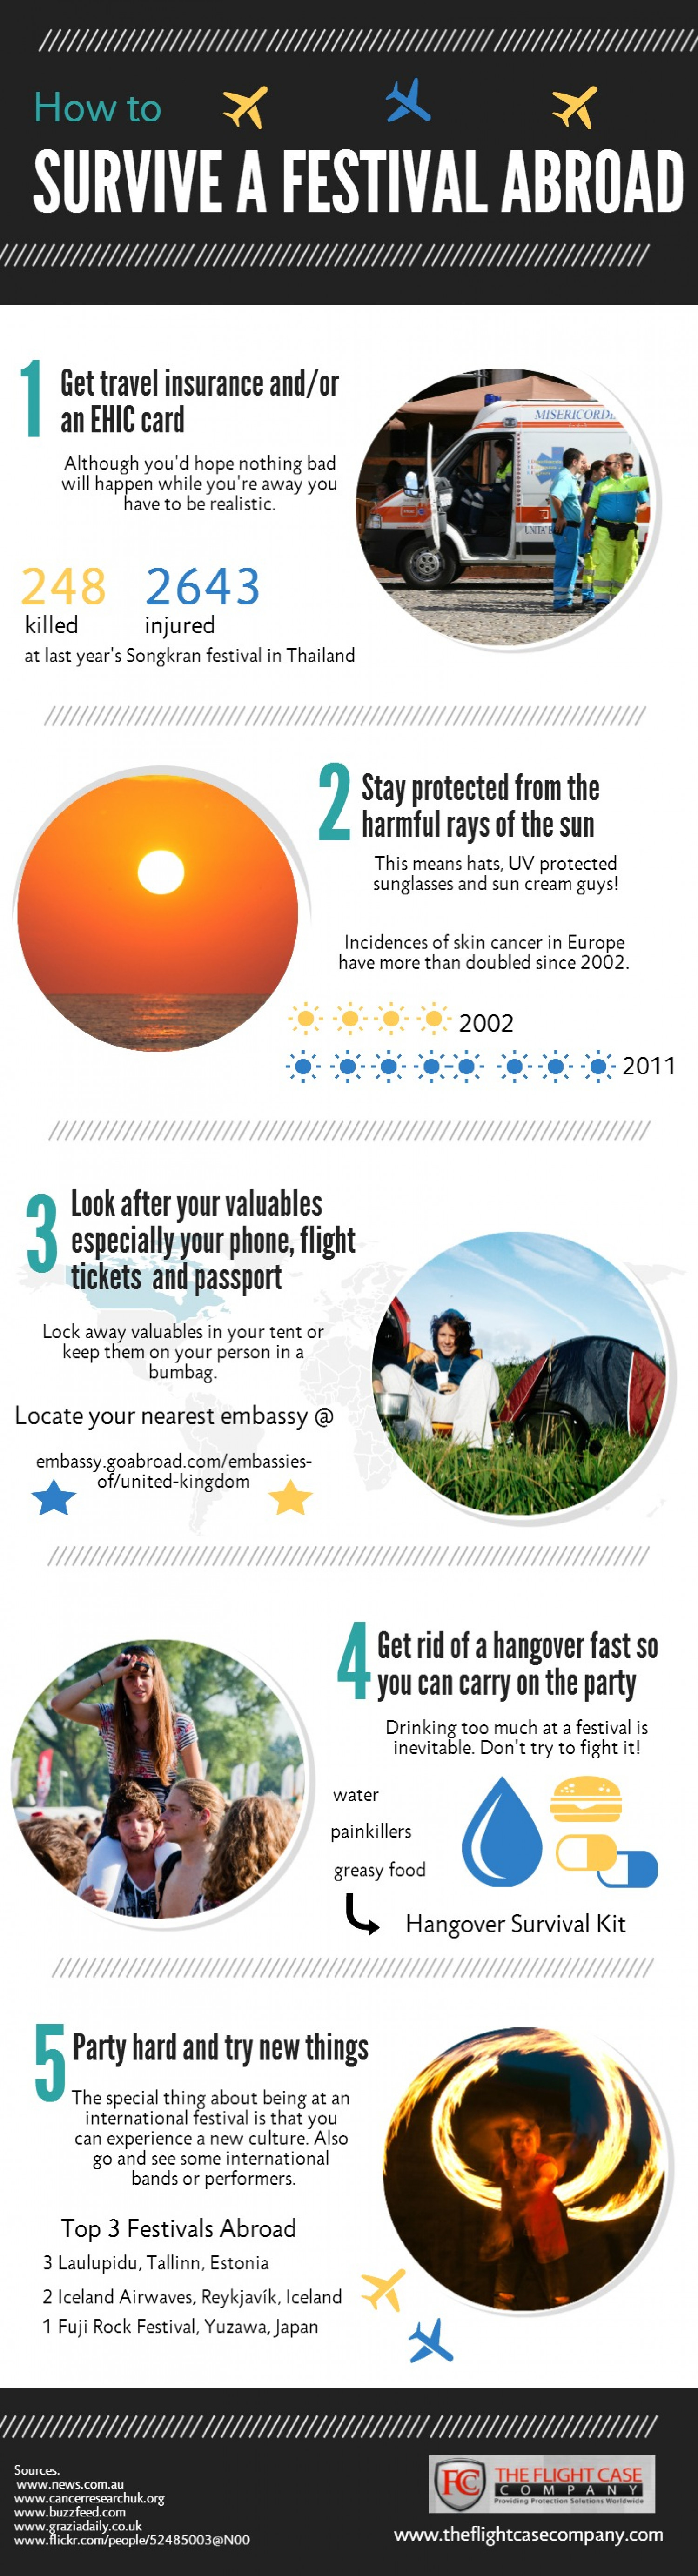 How to Survive a Festival Abroad Infographic